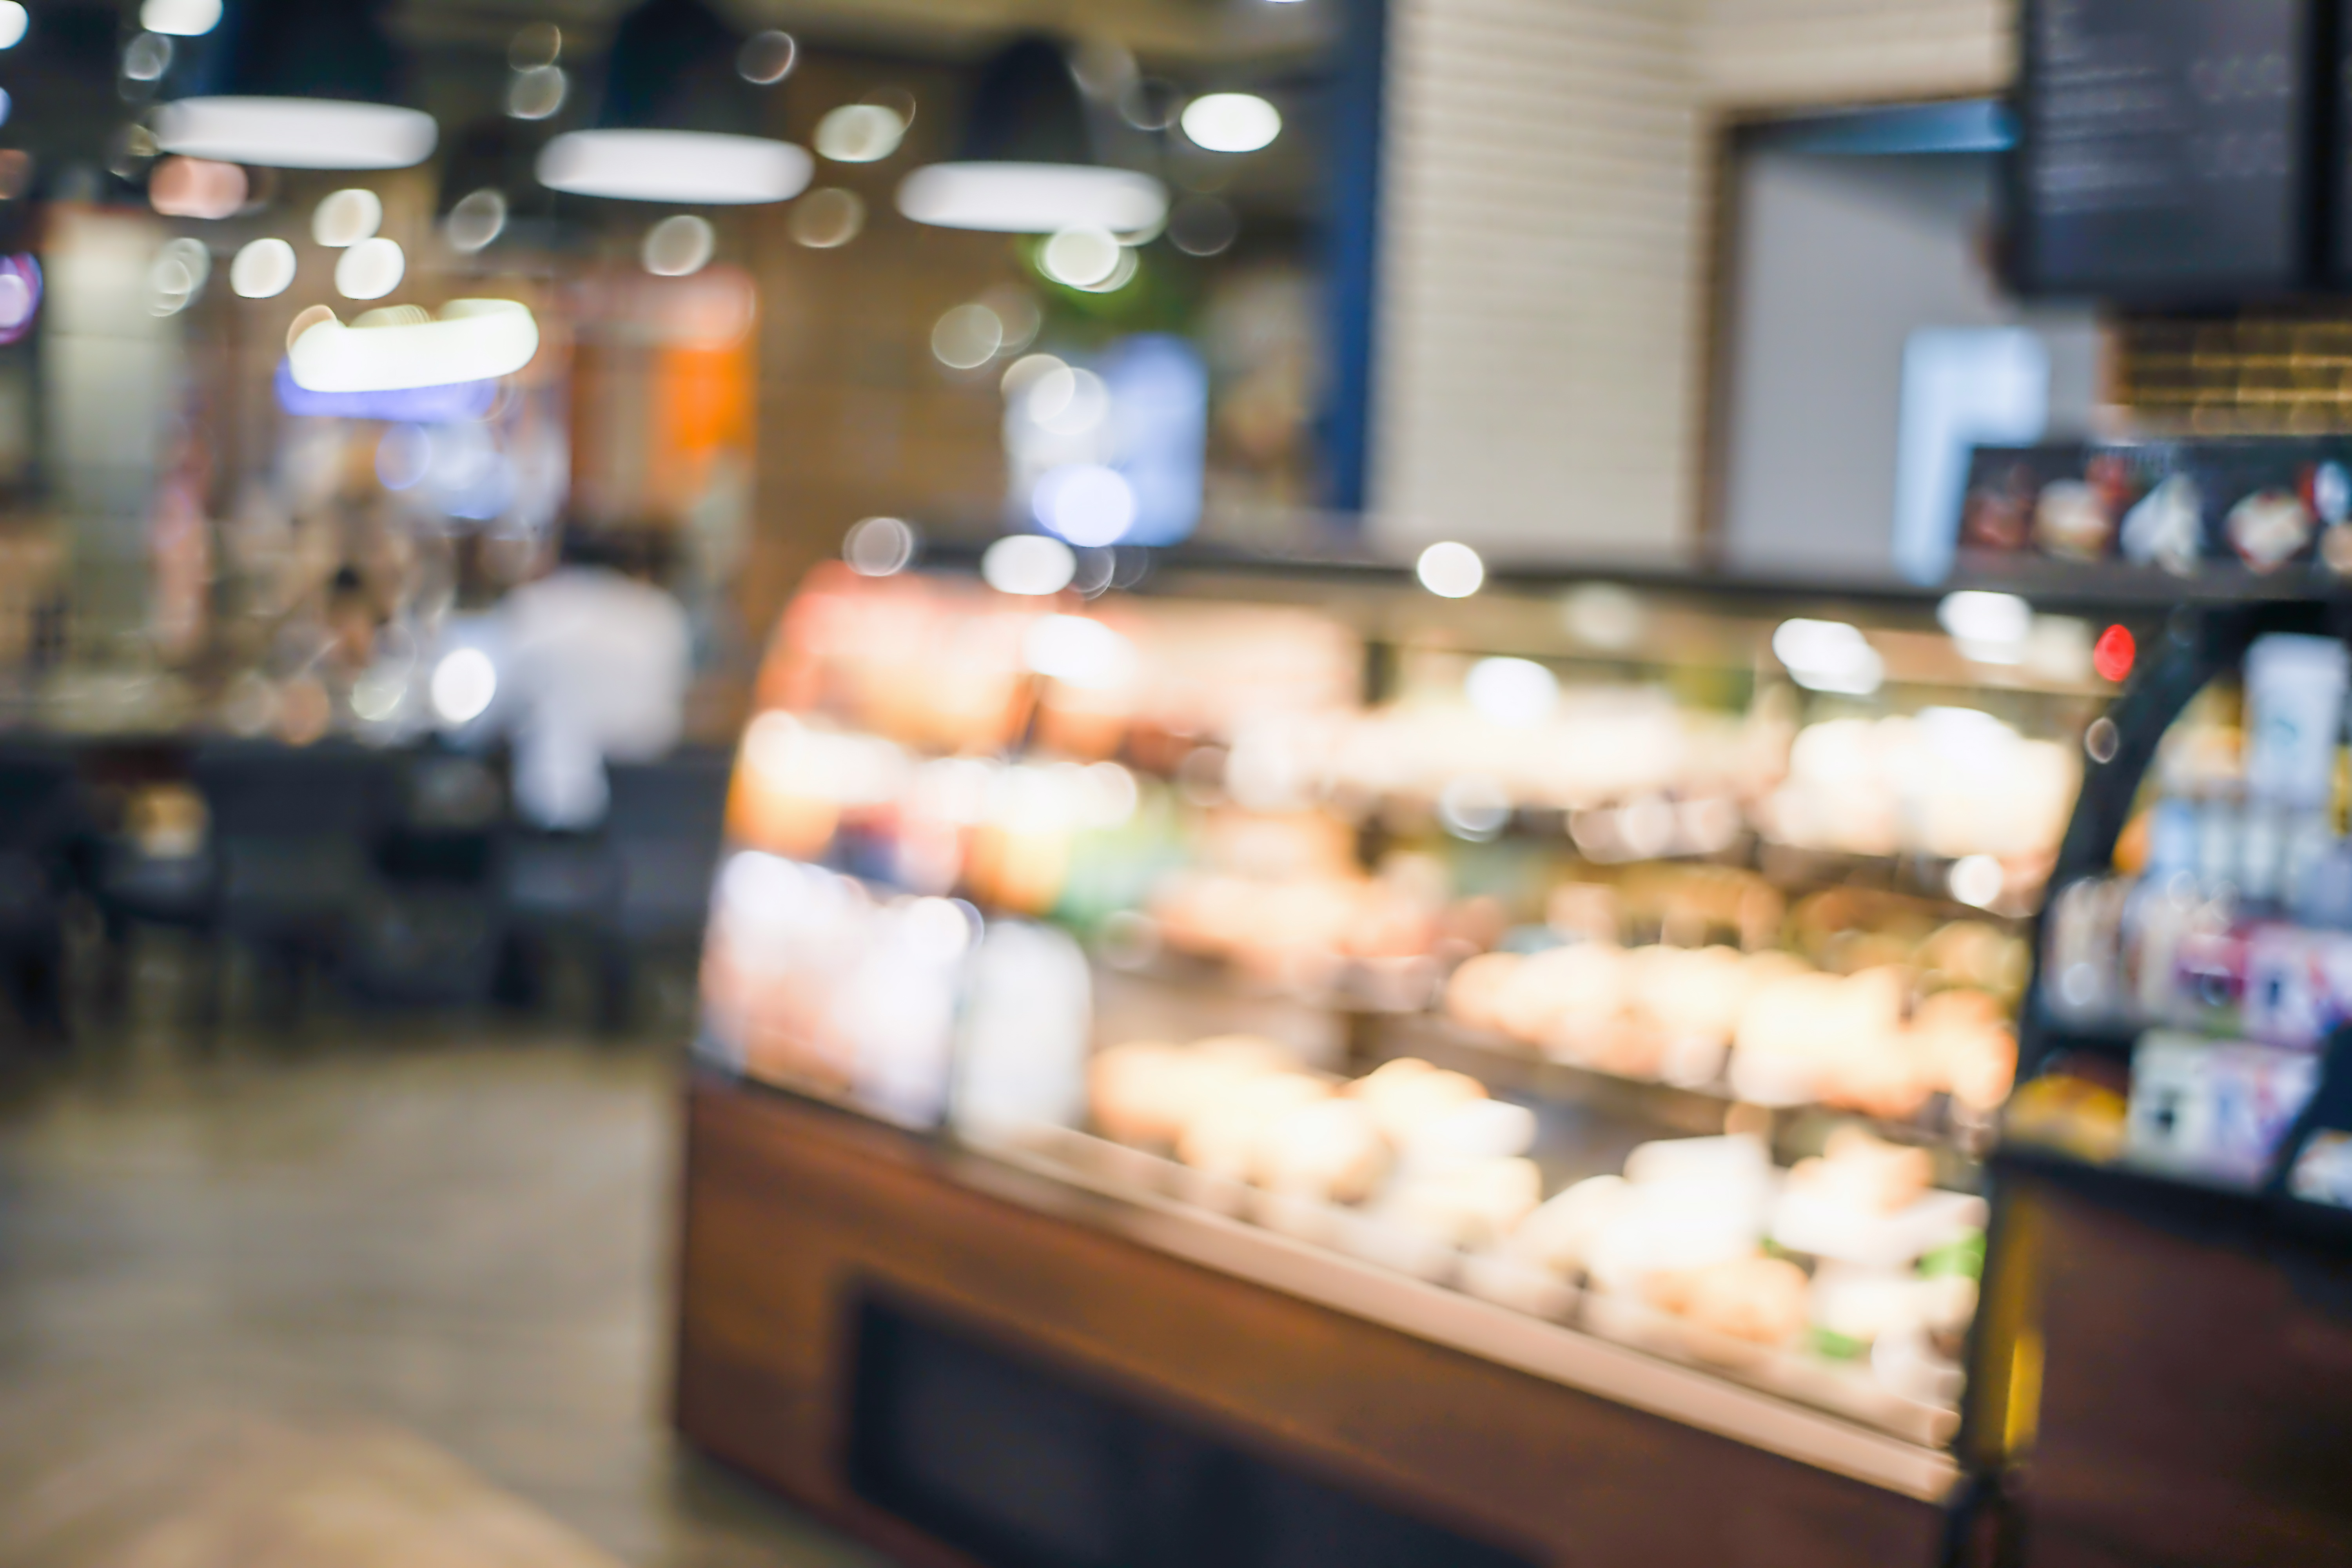 The Grocerant: Where Convenience is King